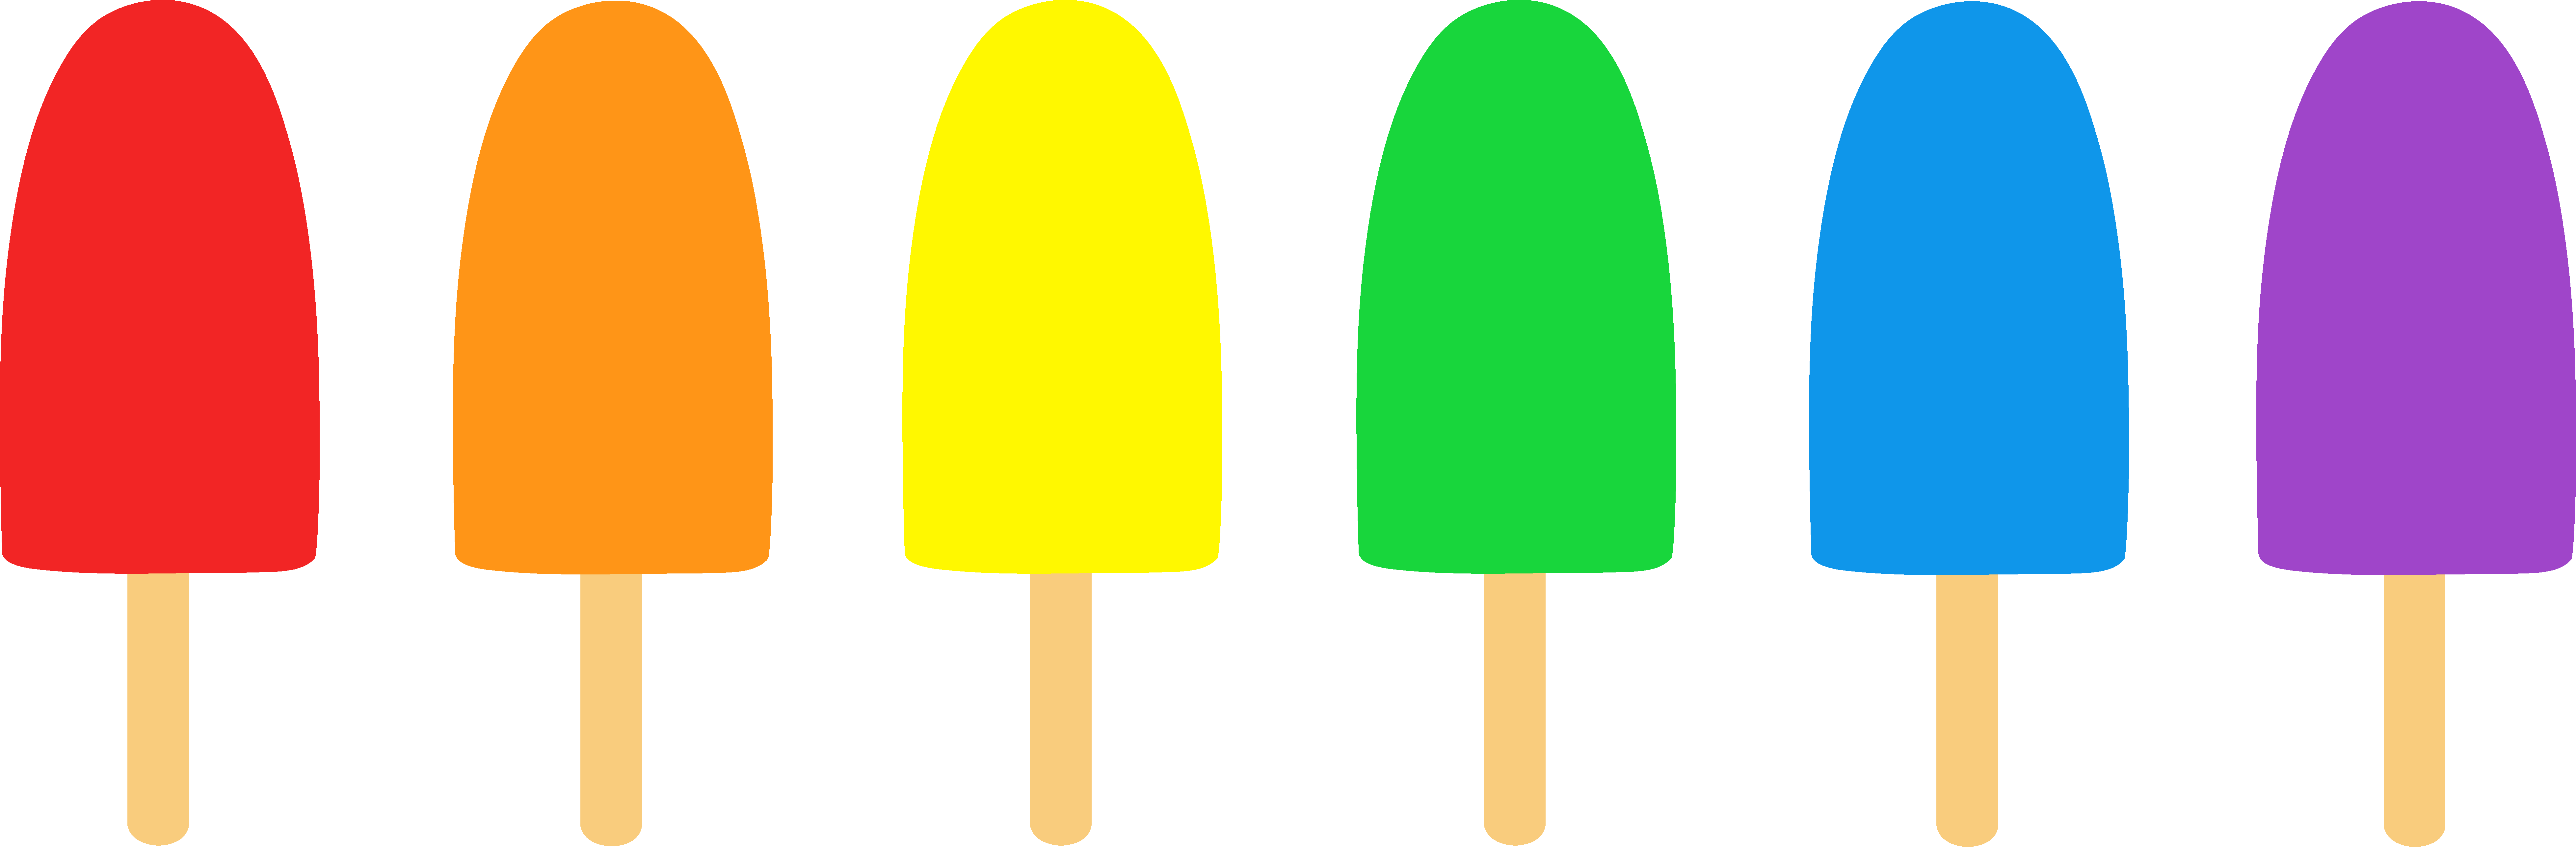 Free popsicle clipart.